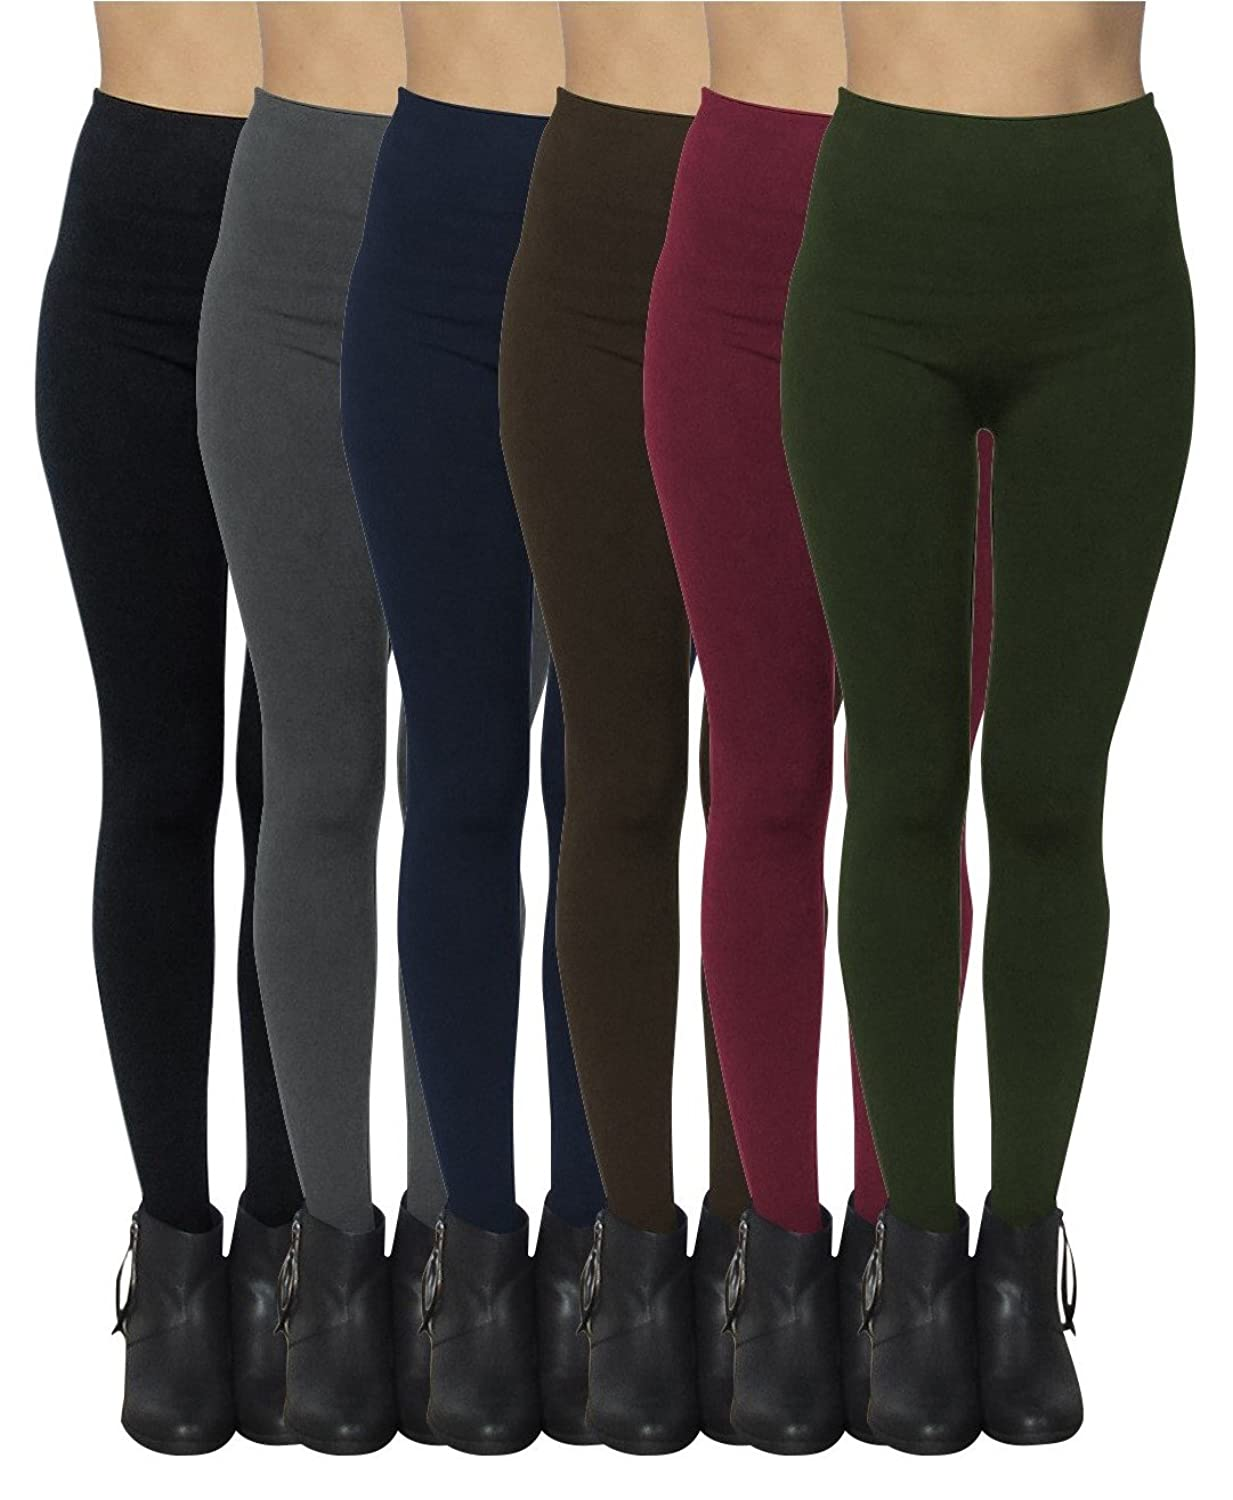 f6cfdedaca16b8 LEGGINGS FOR WOMEN: Ultra soft and comfortable seamless fleece lined  leggings. ONE SIZE: One size fits most, up to size XL or ...